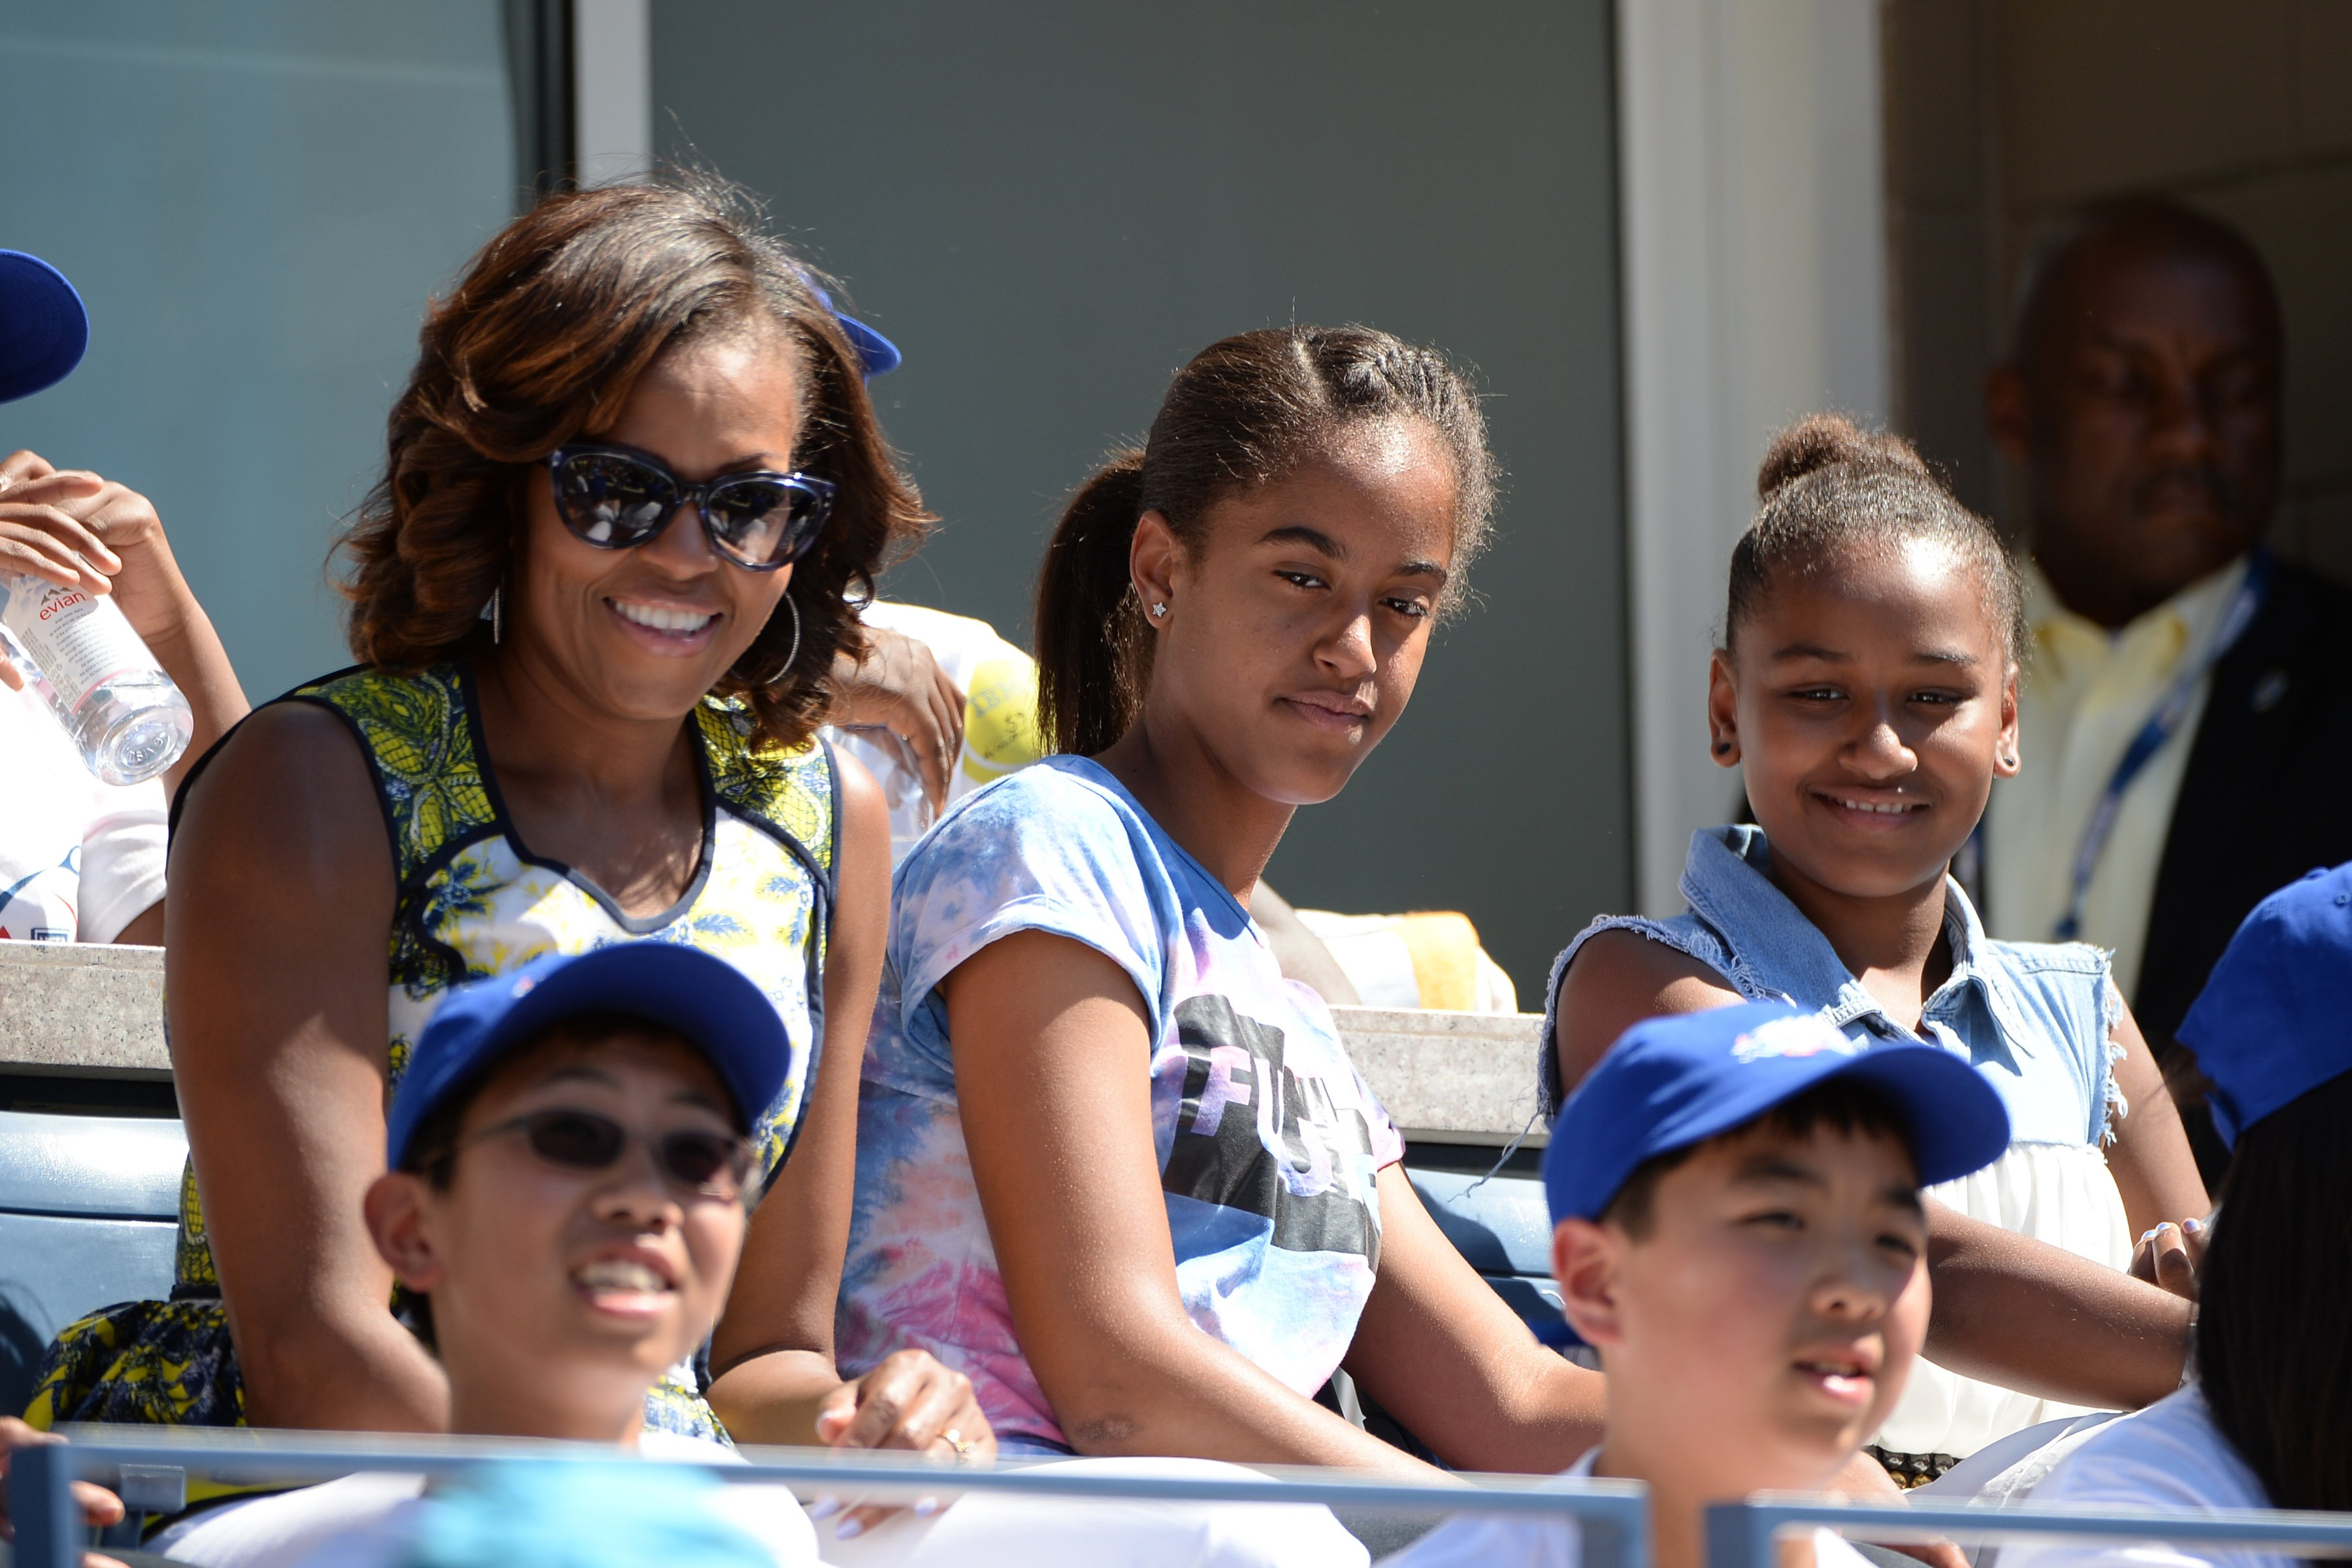 Michelle Obama & daughters Sasha and Malia at the Arthur Ashe Kids Day on Aug. 24, 2013 in New York City | Photo: Getty Images